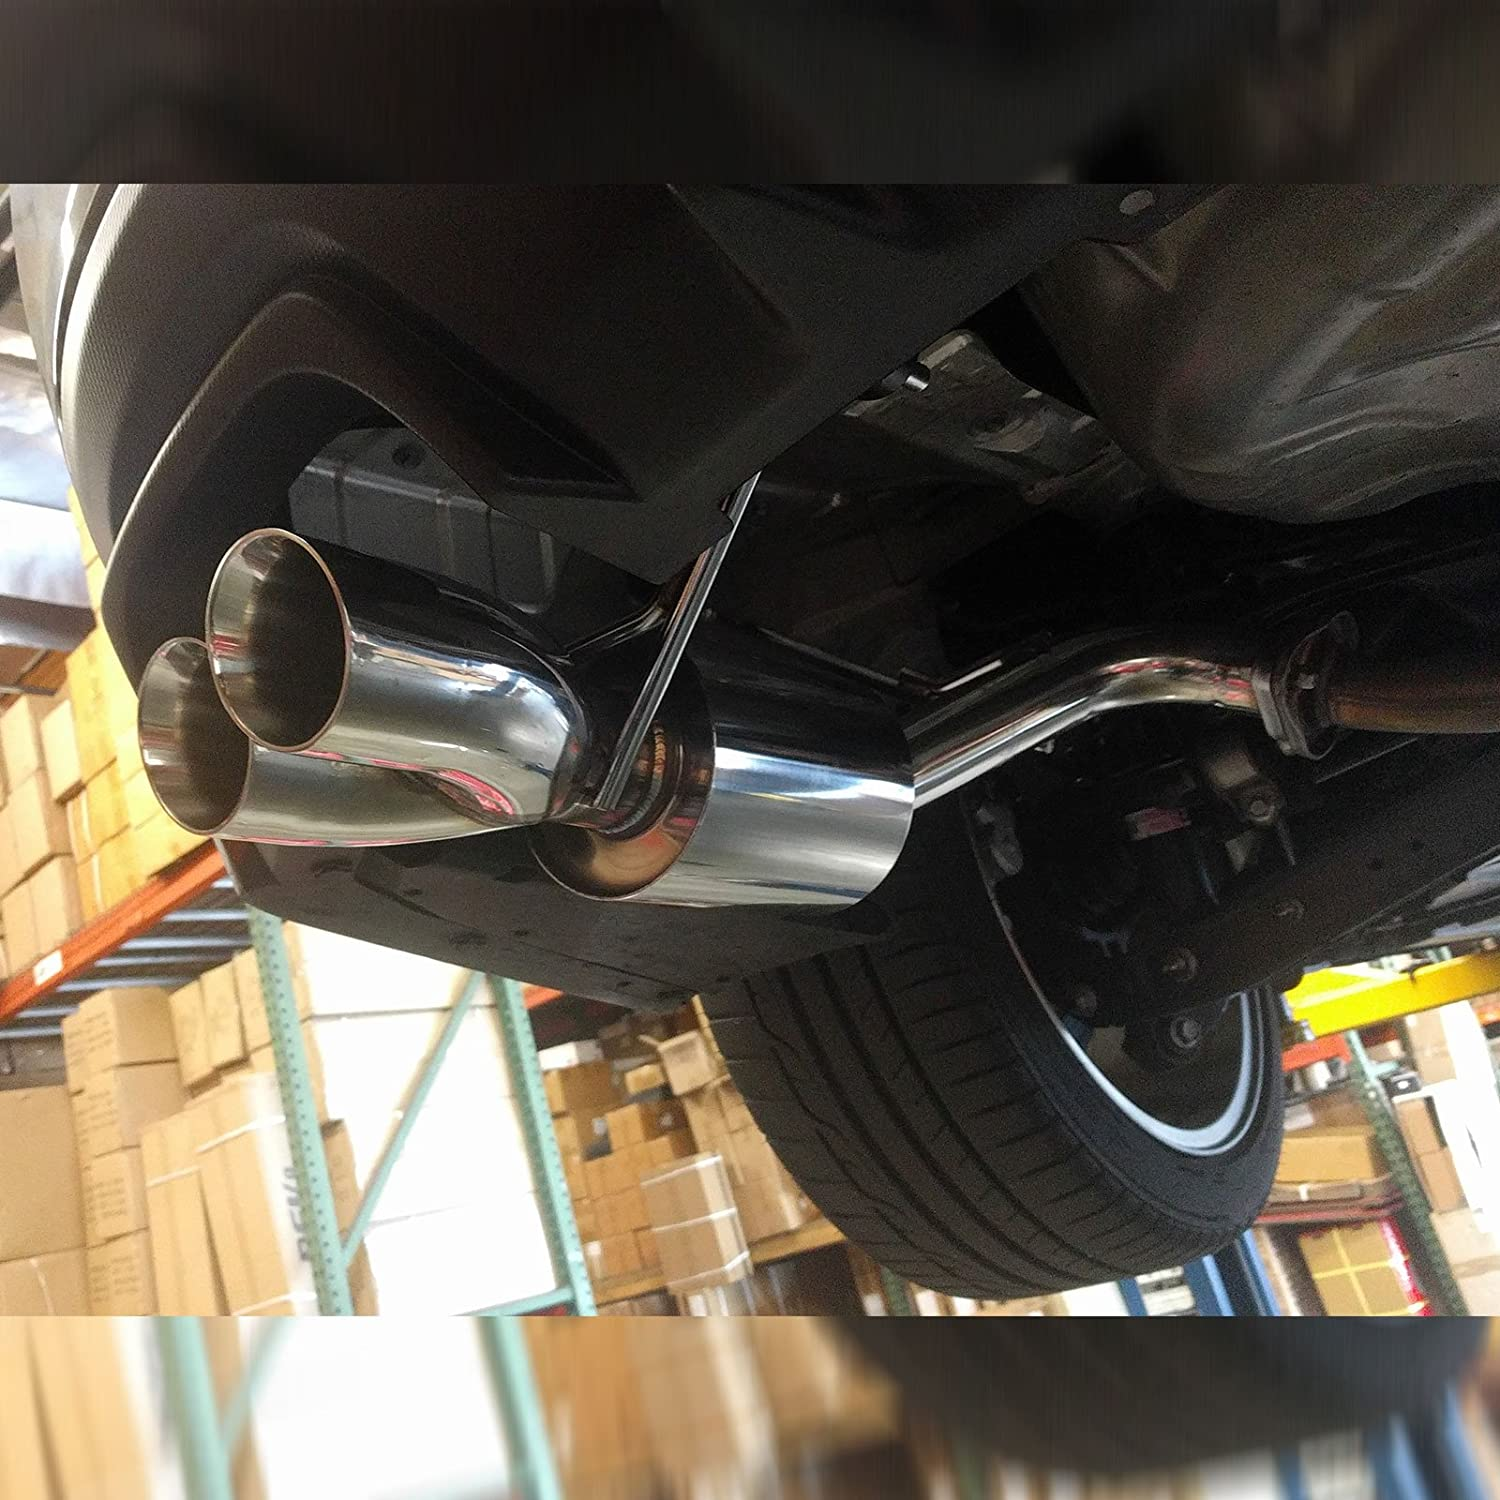 FlowMaxx Exhaust Kit 2.5 O.D compatible with Subaru WRX//WRX STI 2015+UP Axle Back CB-1525 Doubled Wall Tip Rev9 Pipe